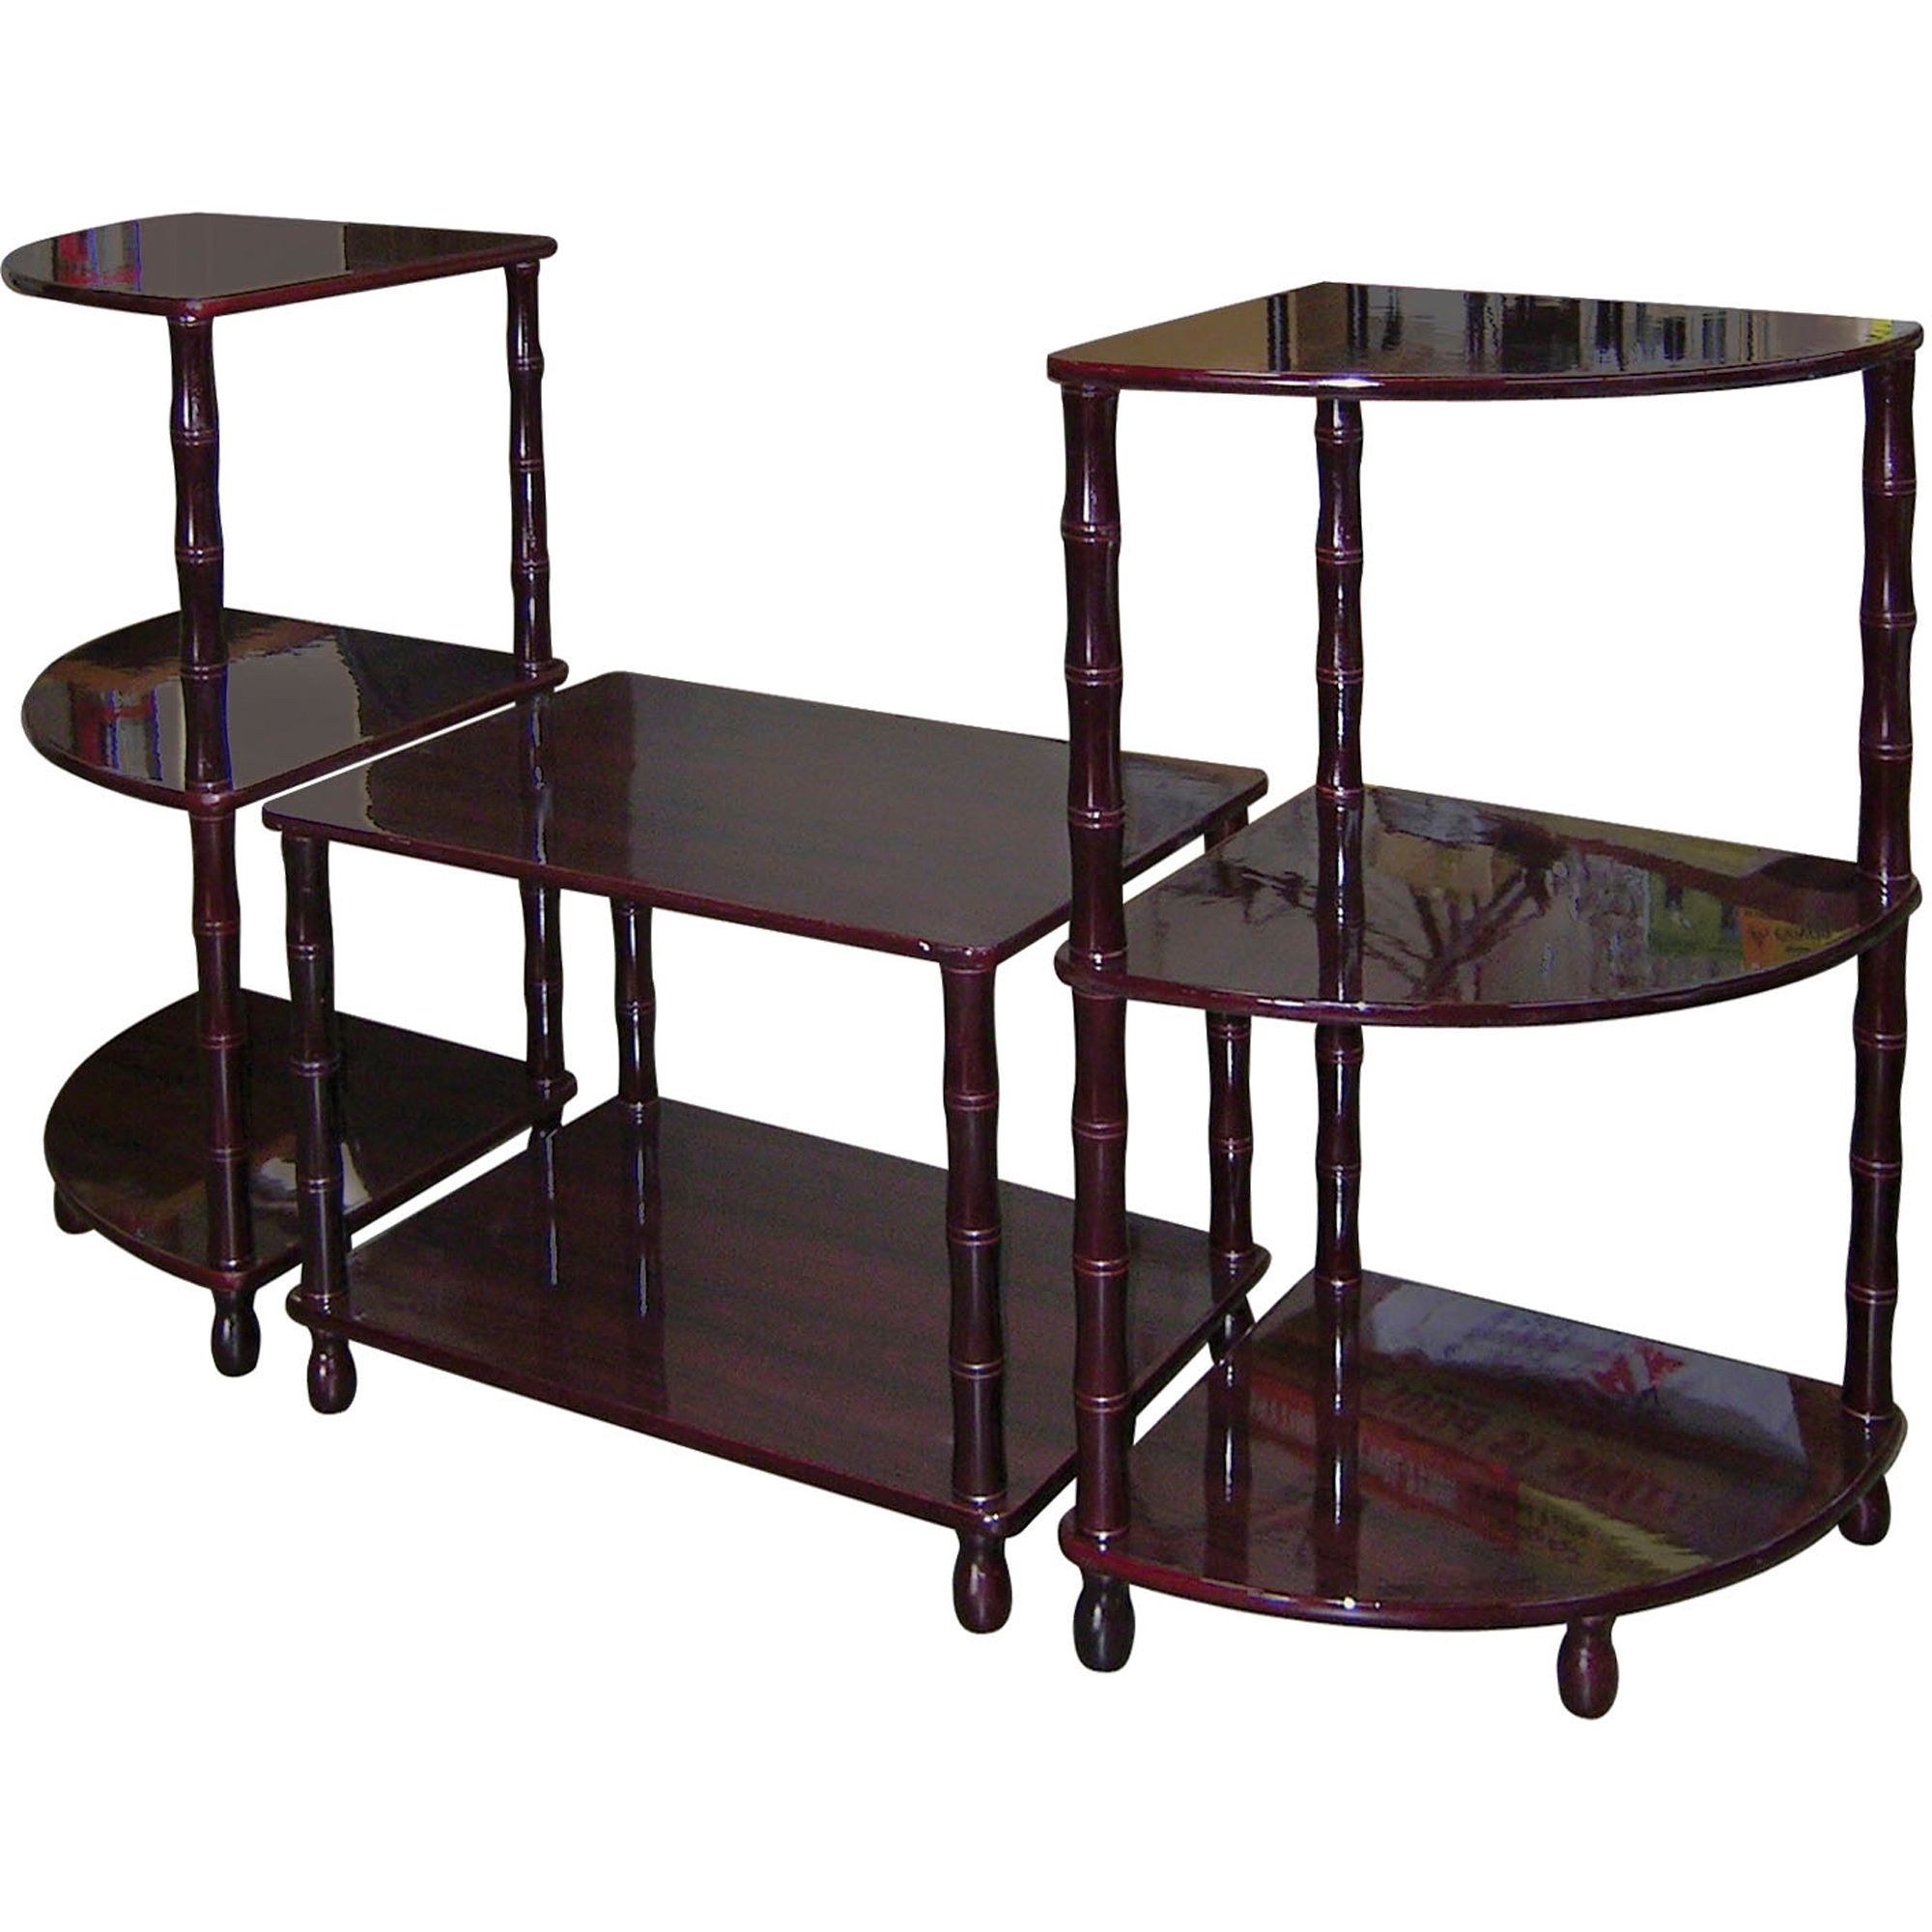 ore wood tier accent table set dark cherry finish spin prod tiered metal vintage scandinavian chair antique long acrylic coffee inch round end bottle wine rack cymbal stand oak